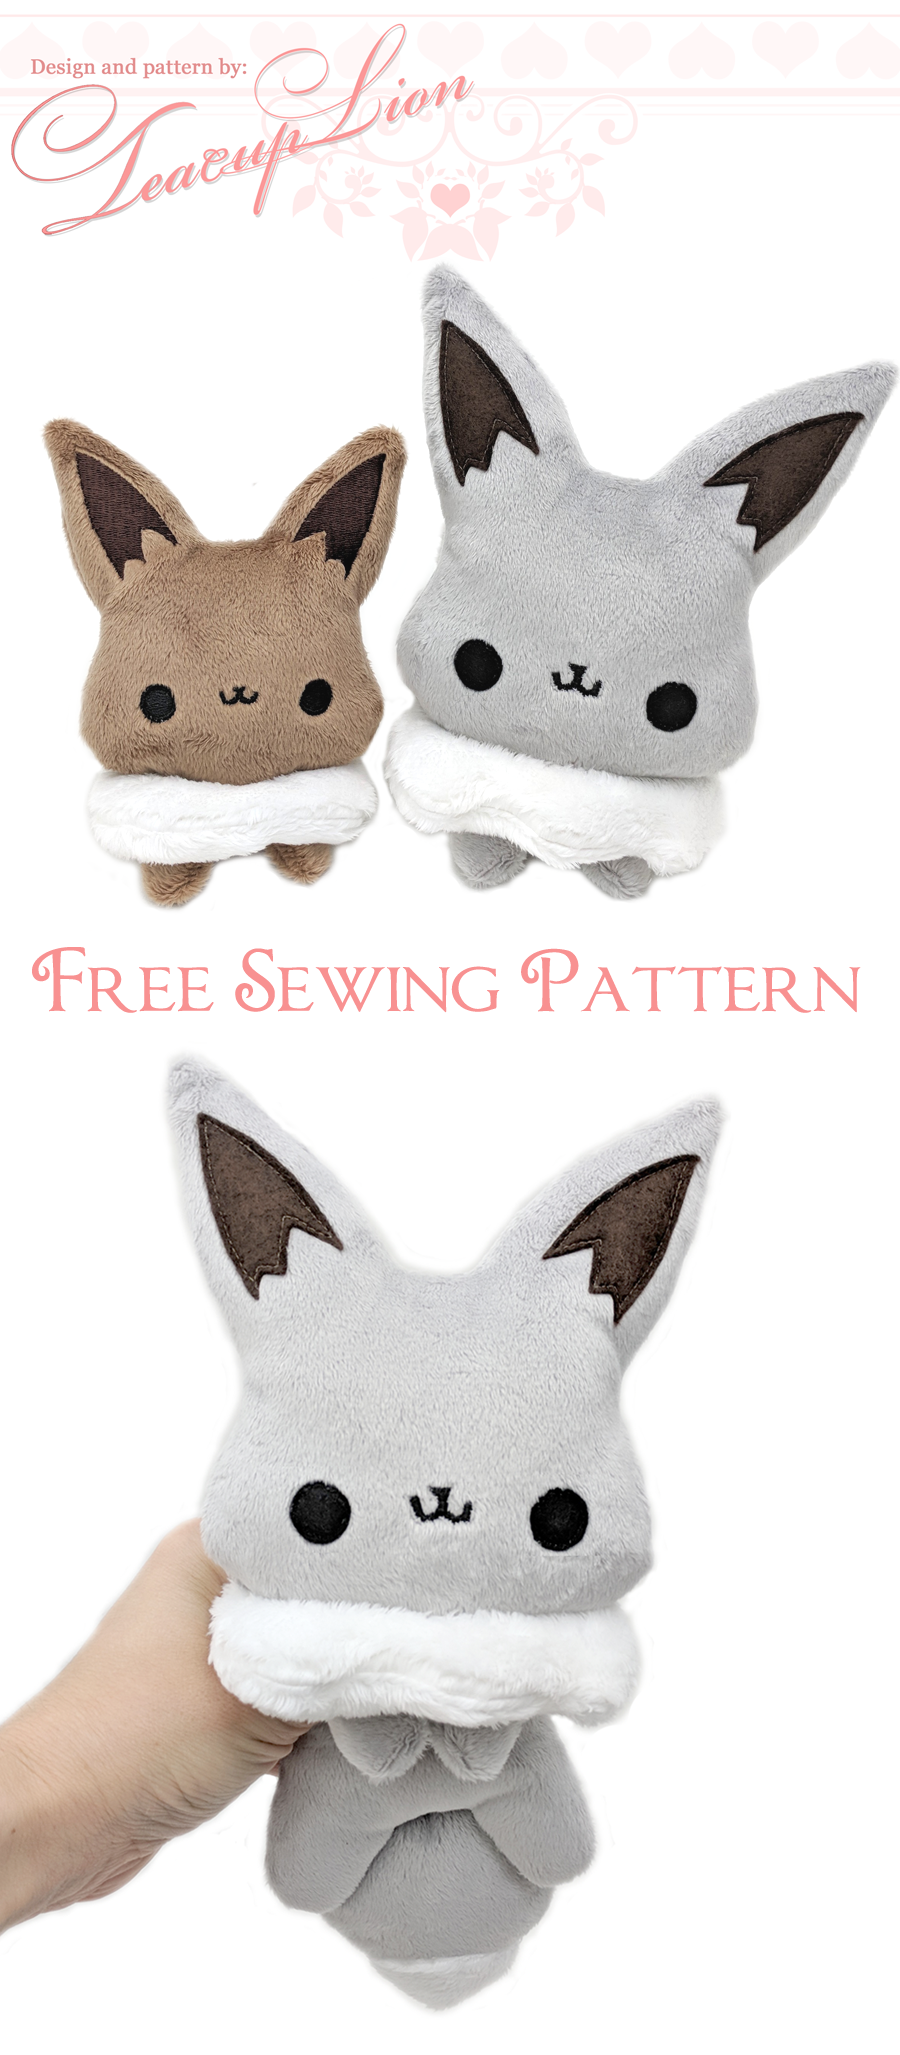 Free Eevee plushie sewing pattern and ITH machine embroidery pattern ...